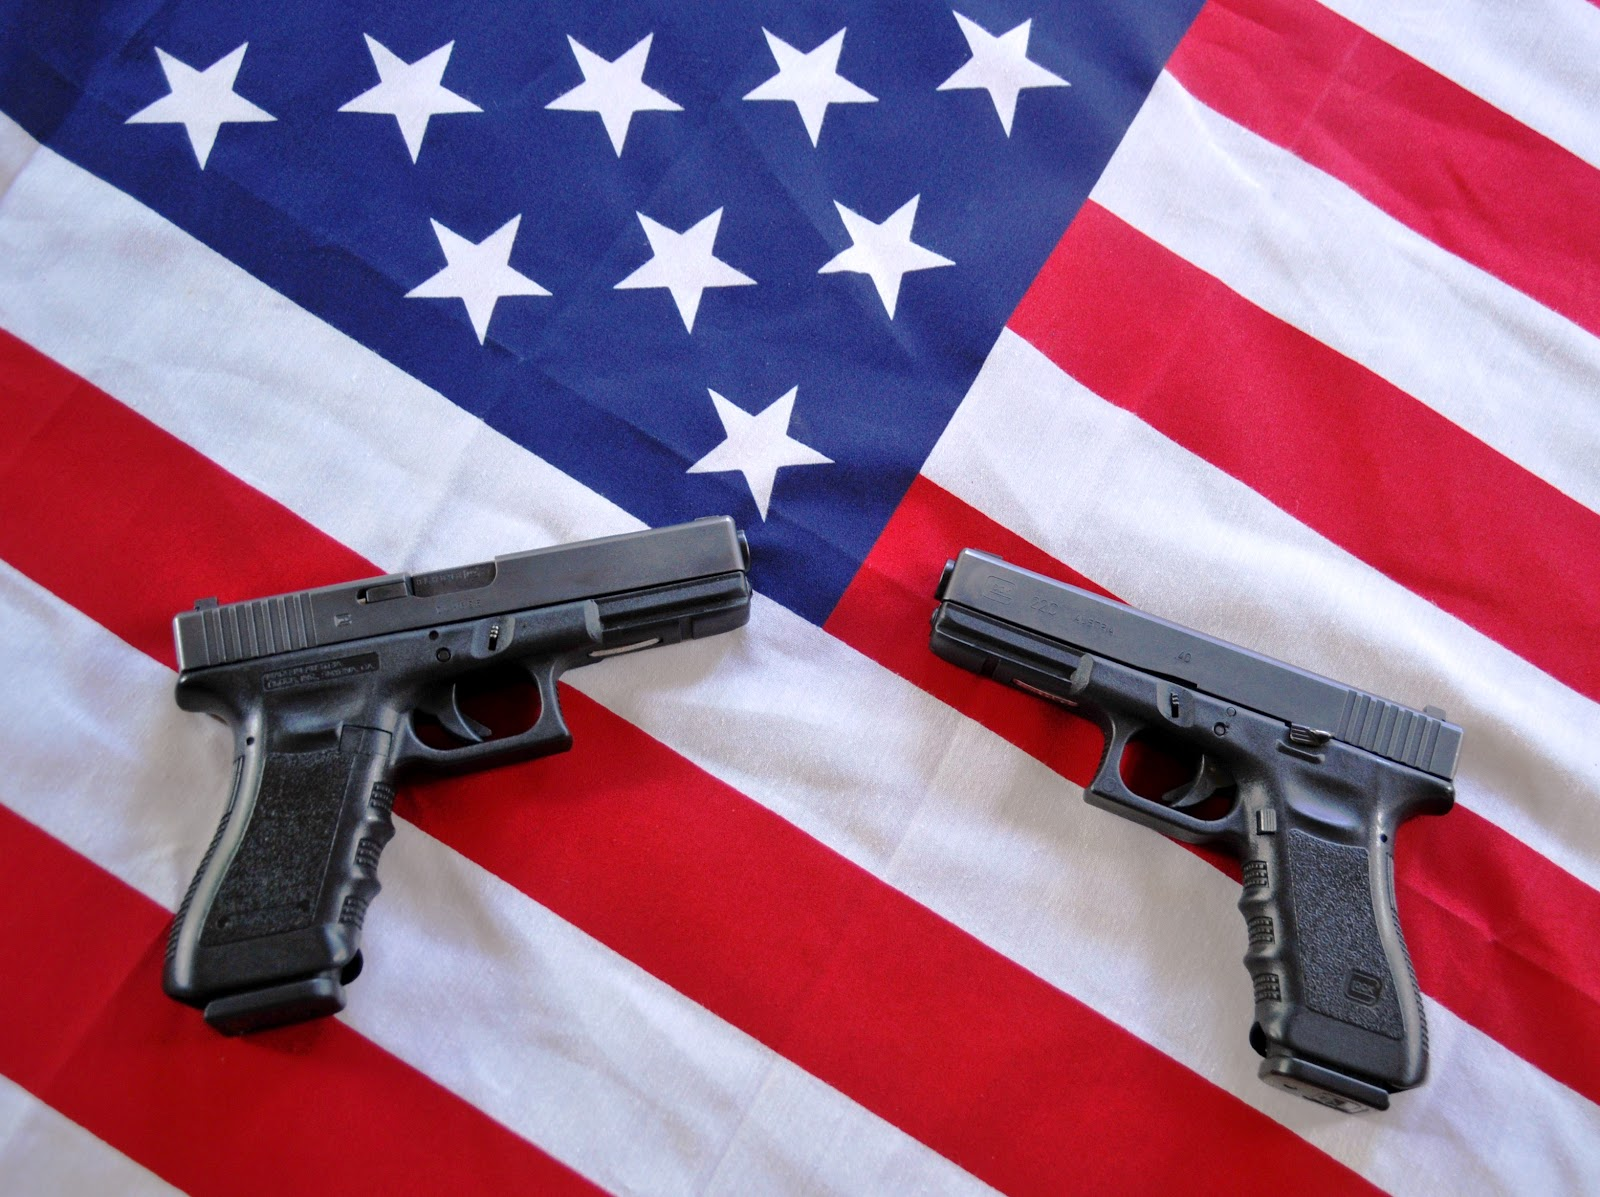 american debate essay firearm great gun violence A paper on the comparison and contrasts of guns usage in us the growing problem of youth gun violence in various american schools the debate on gun control.